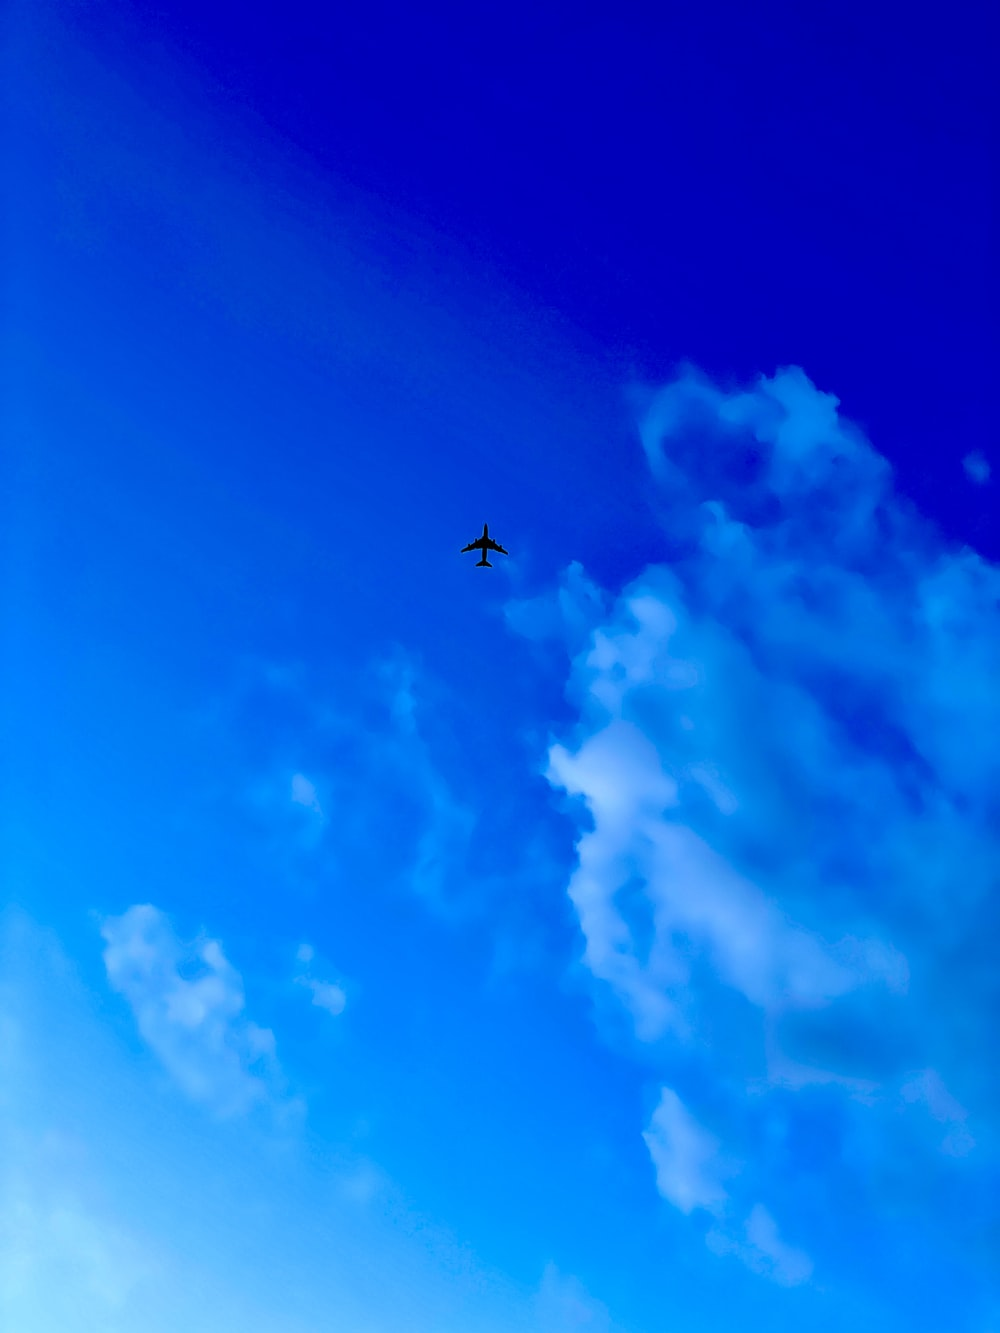 airplane in mid air under blue sky during daytime